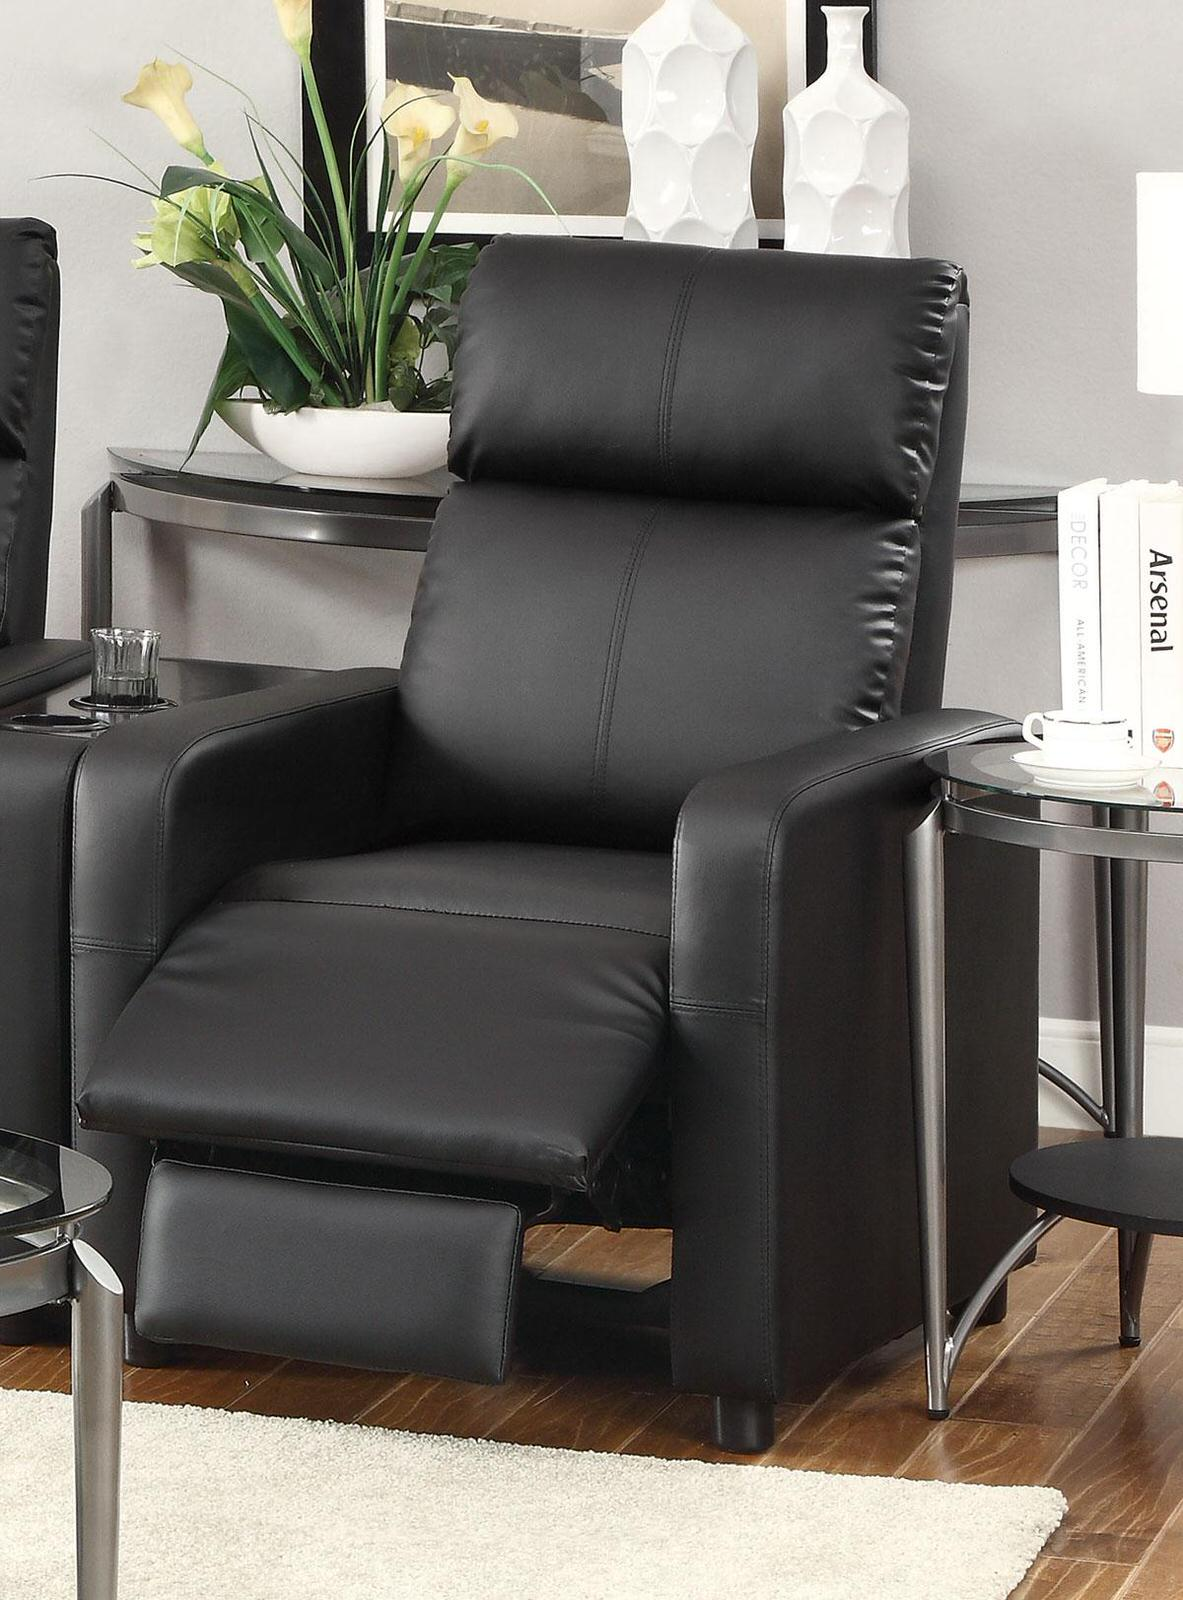 Modern Recliner Chairs 600181 Push Back Chair Recliner Black Vinyl By Coaster